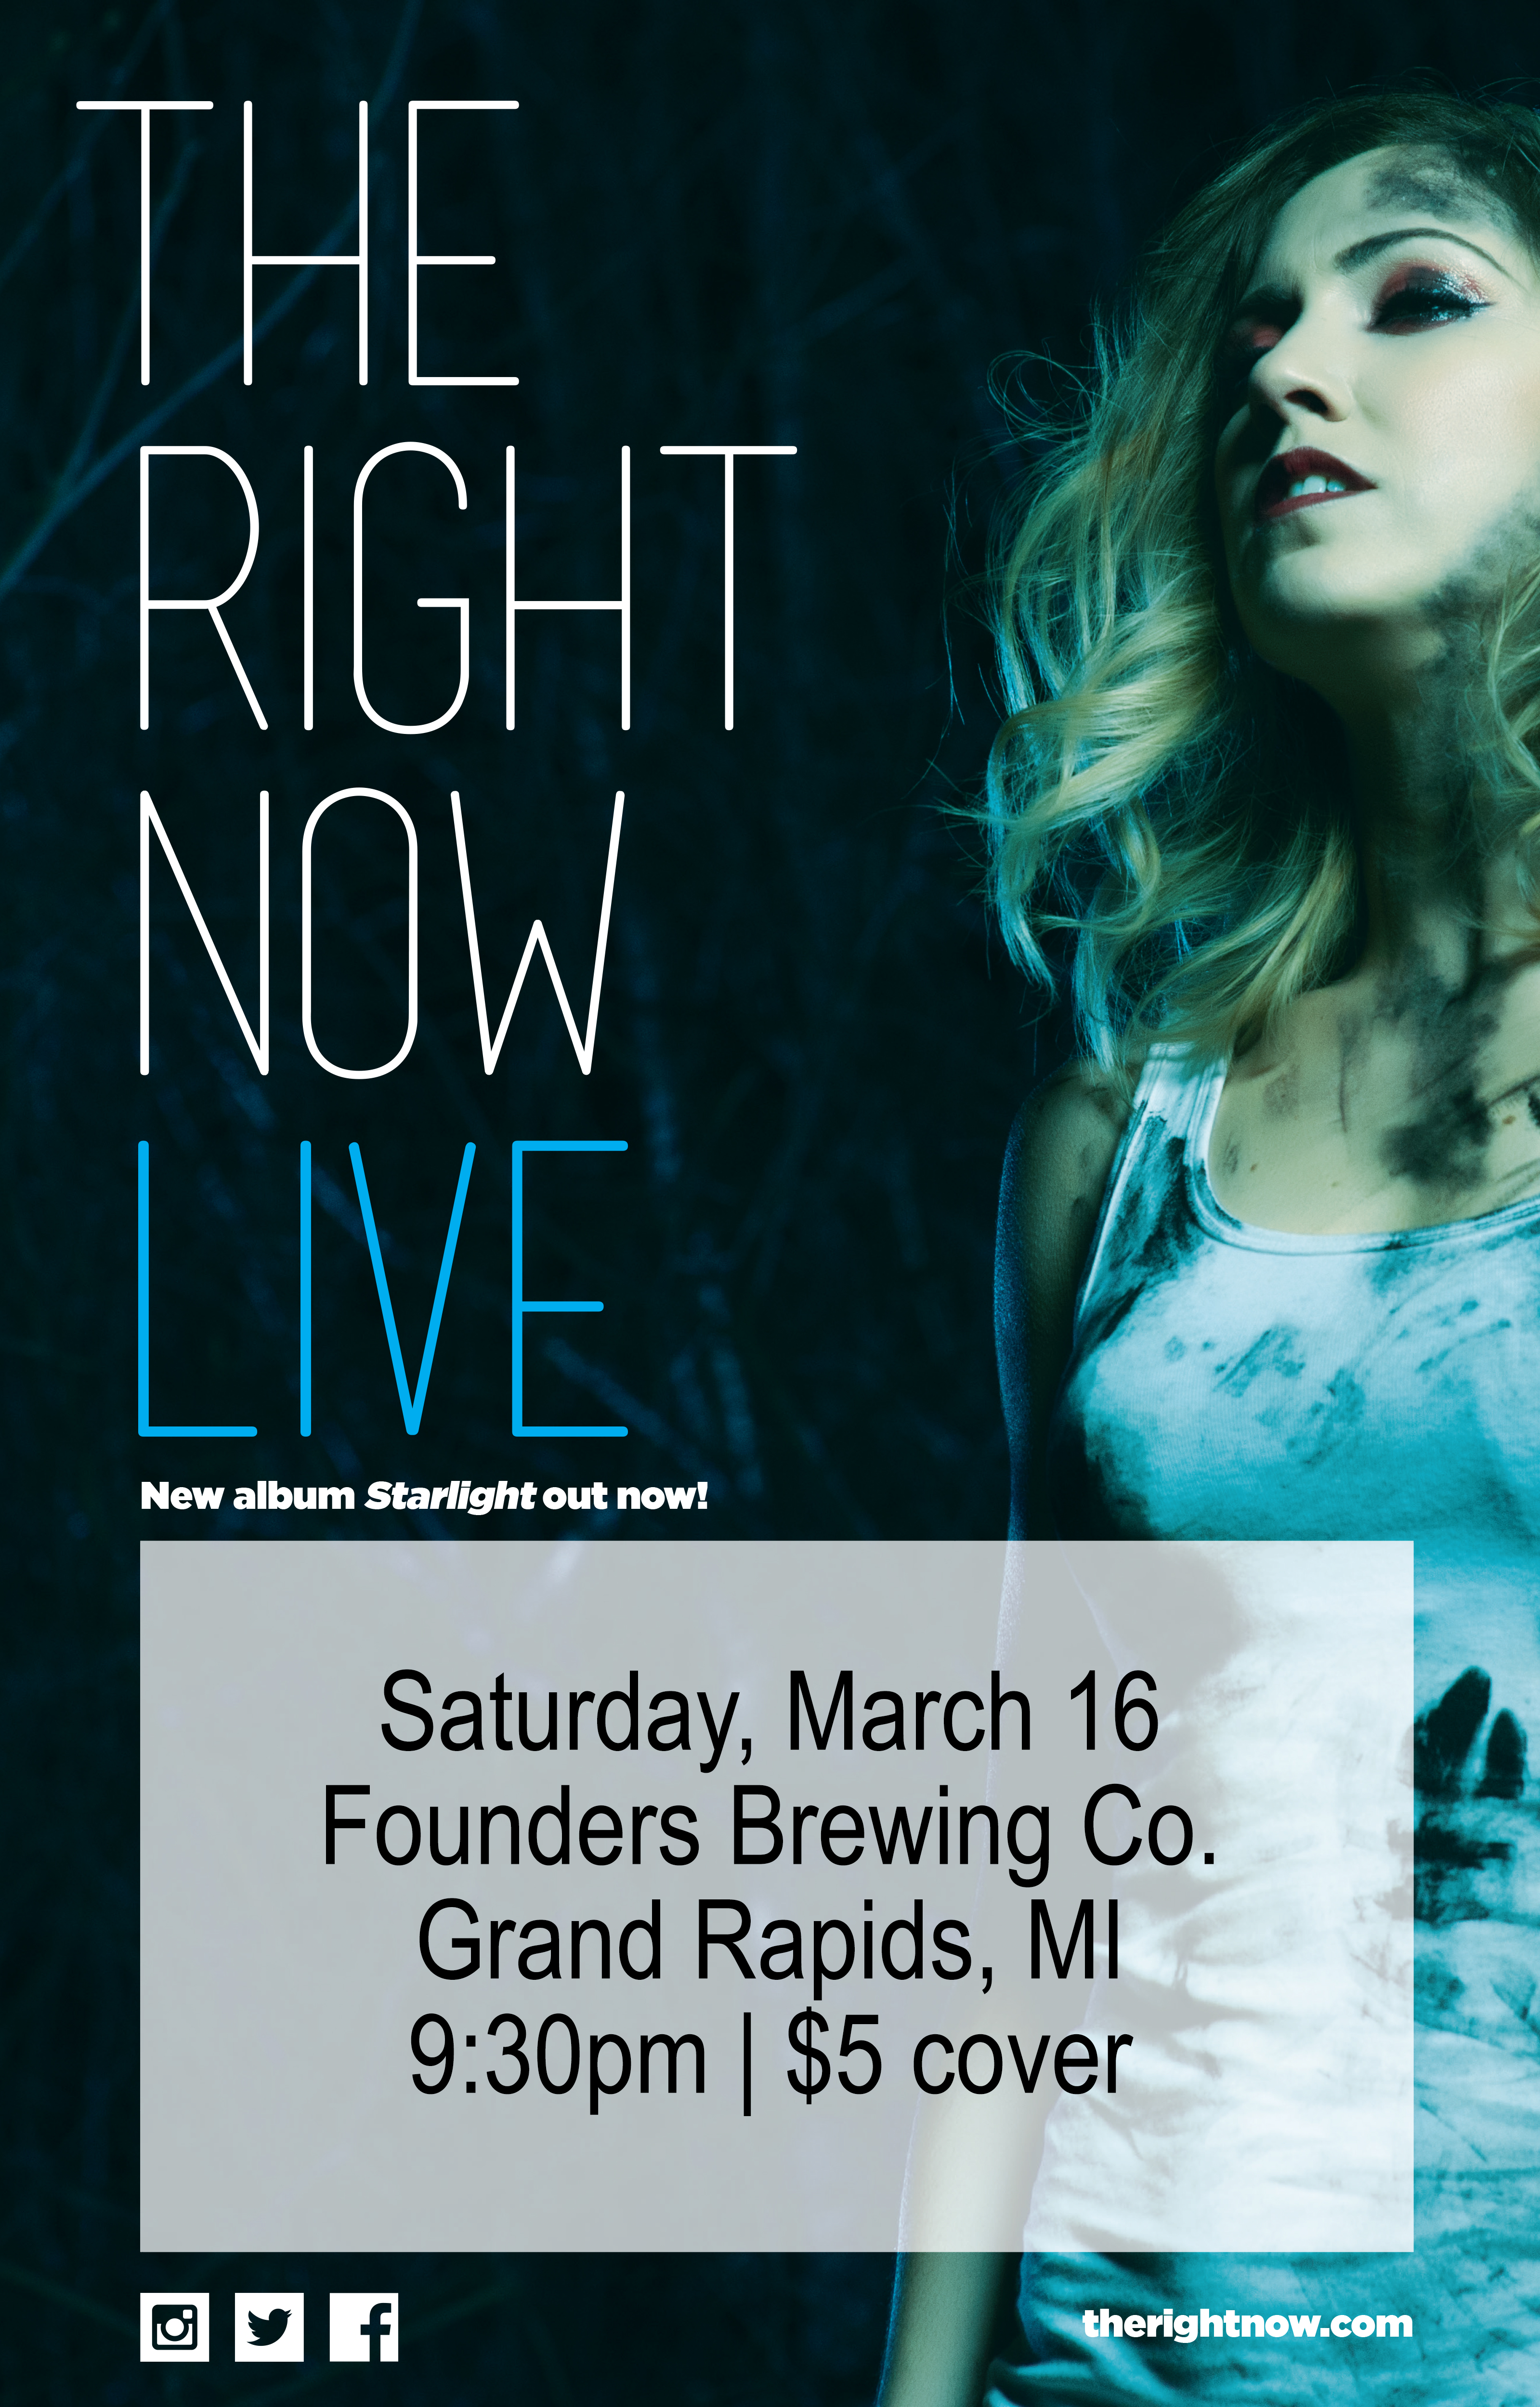 The Right Now event poster